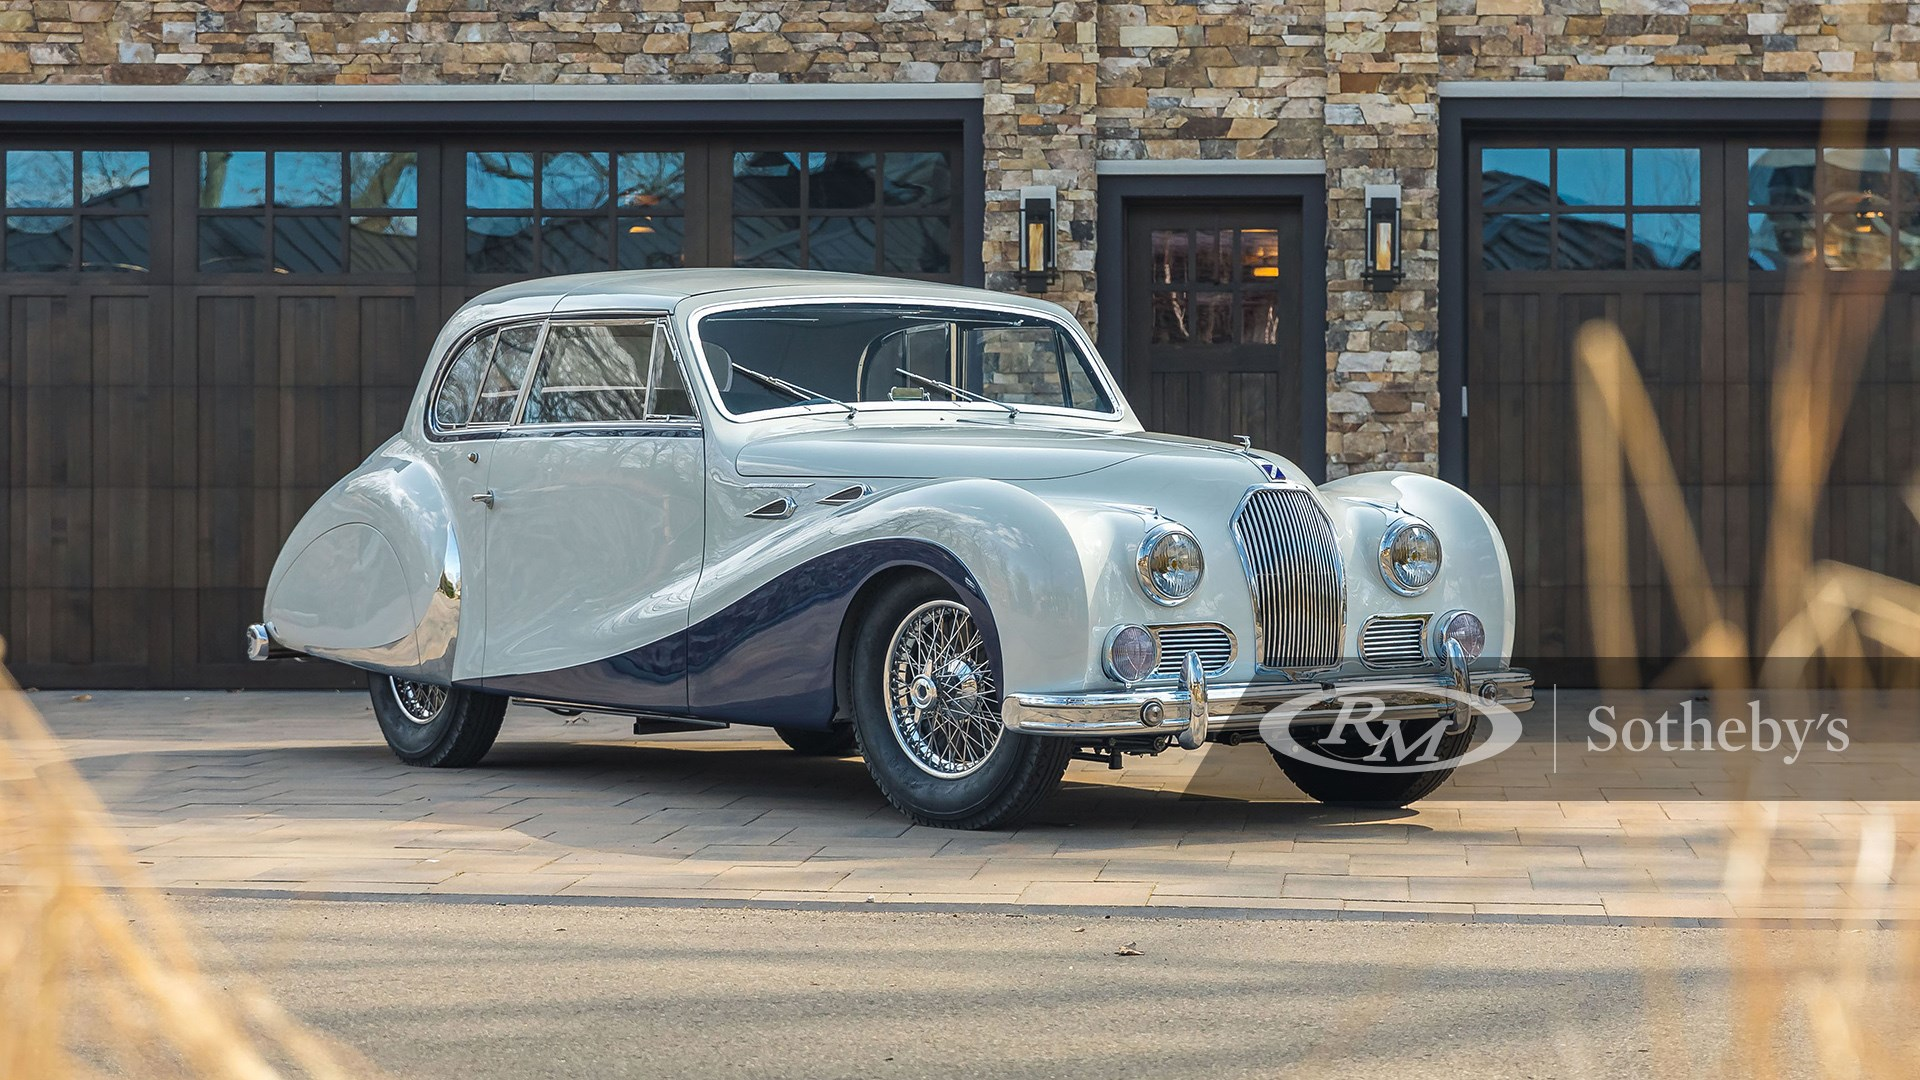 1948 Talbot-Lago T26 Record Sport Coupe De Ville by Saoutchik available at RM Sotheby's Amelia Island Live Auction 2021